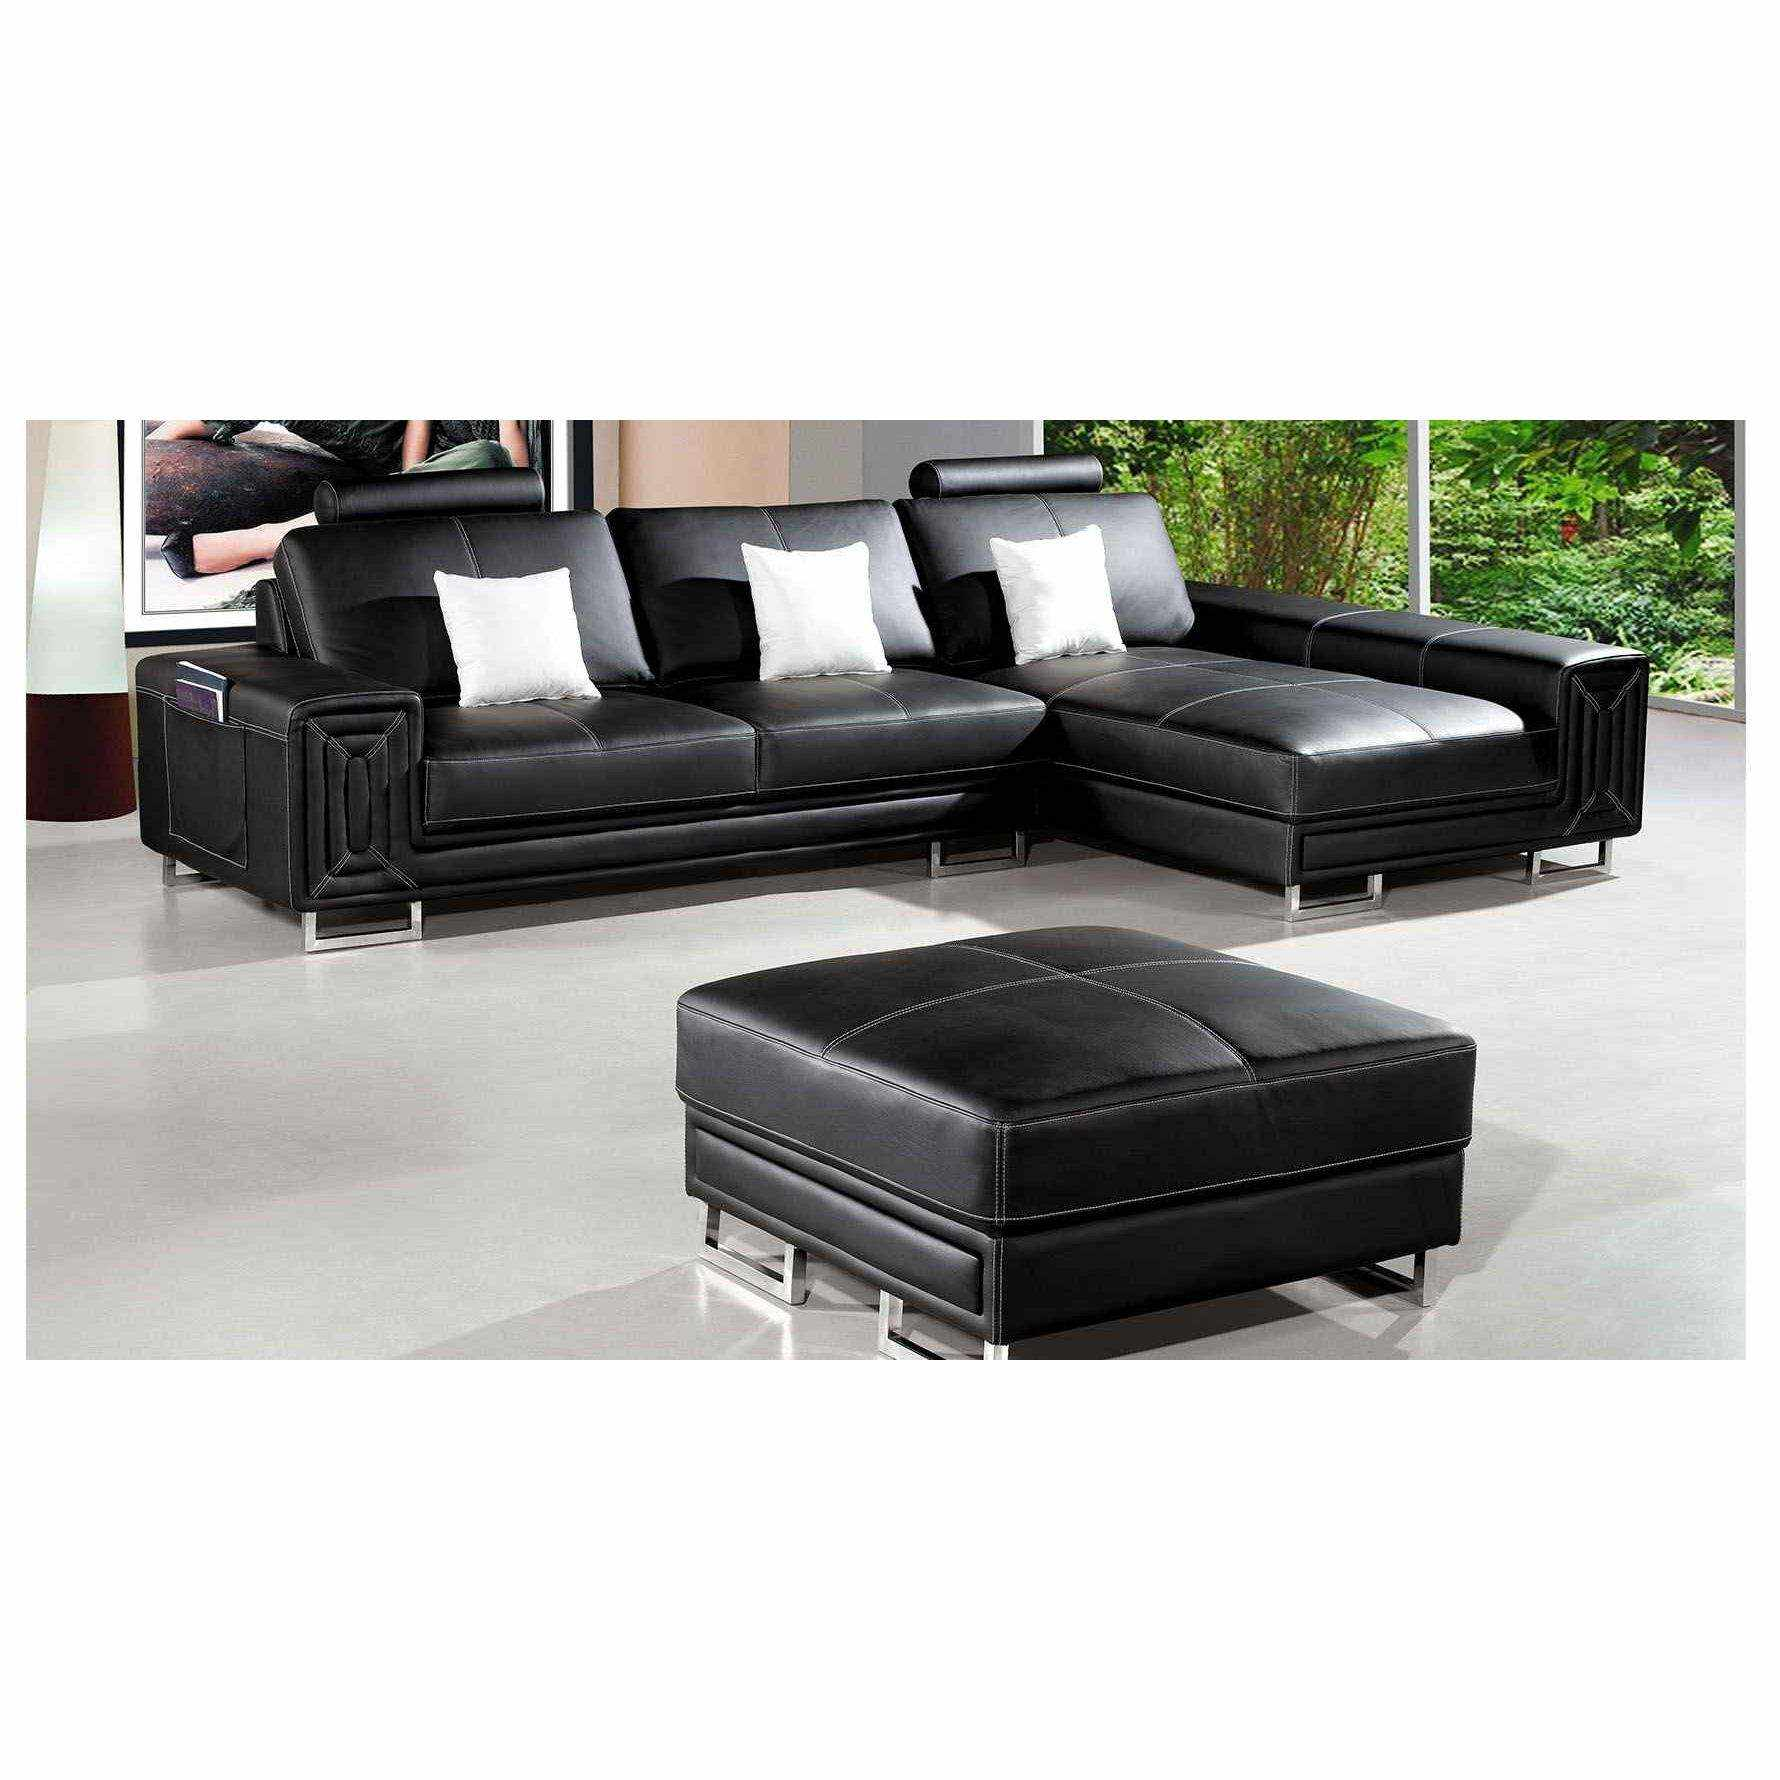 Deco in paris canape cuir d angle noir avec pouf for Canape cuir paris